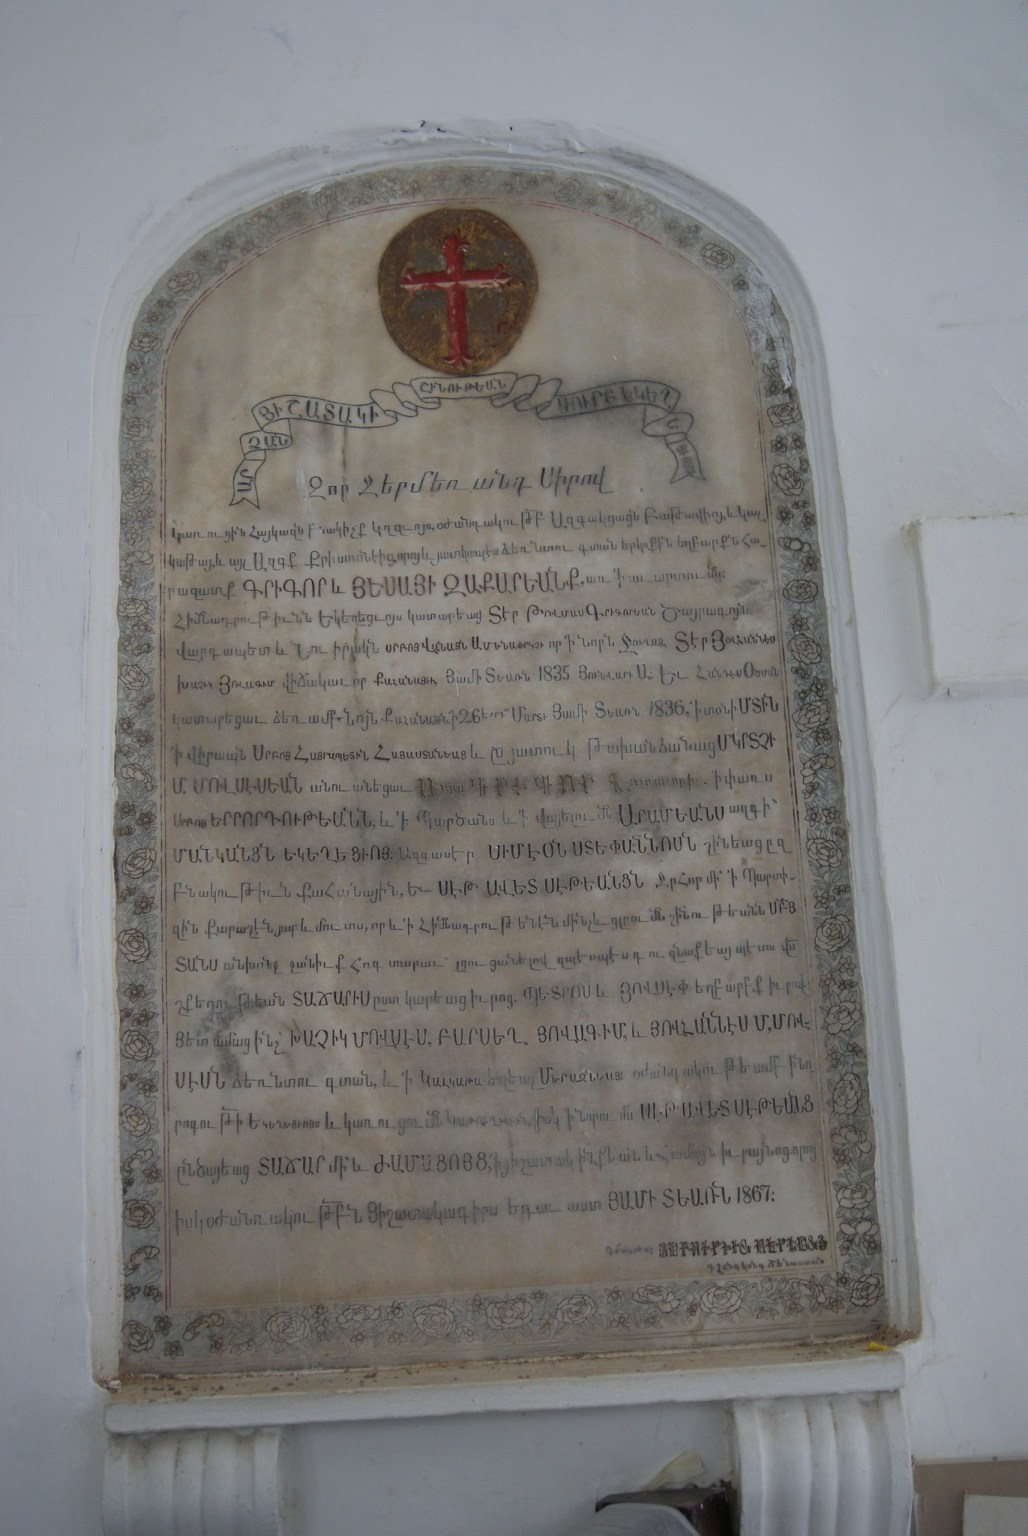 On the wall of the Armenian church in Singabpore